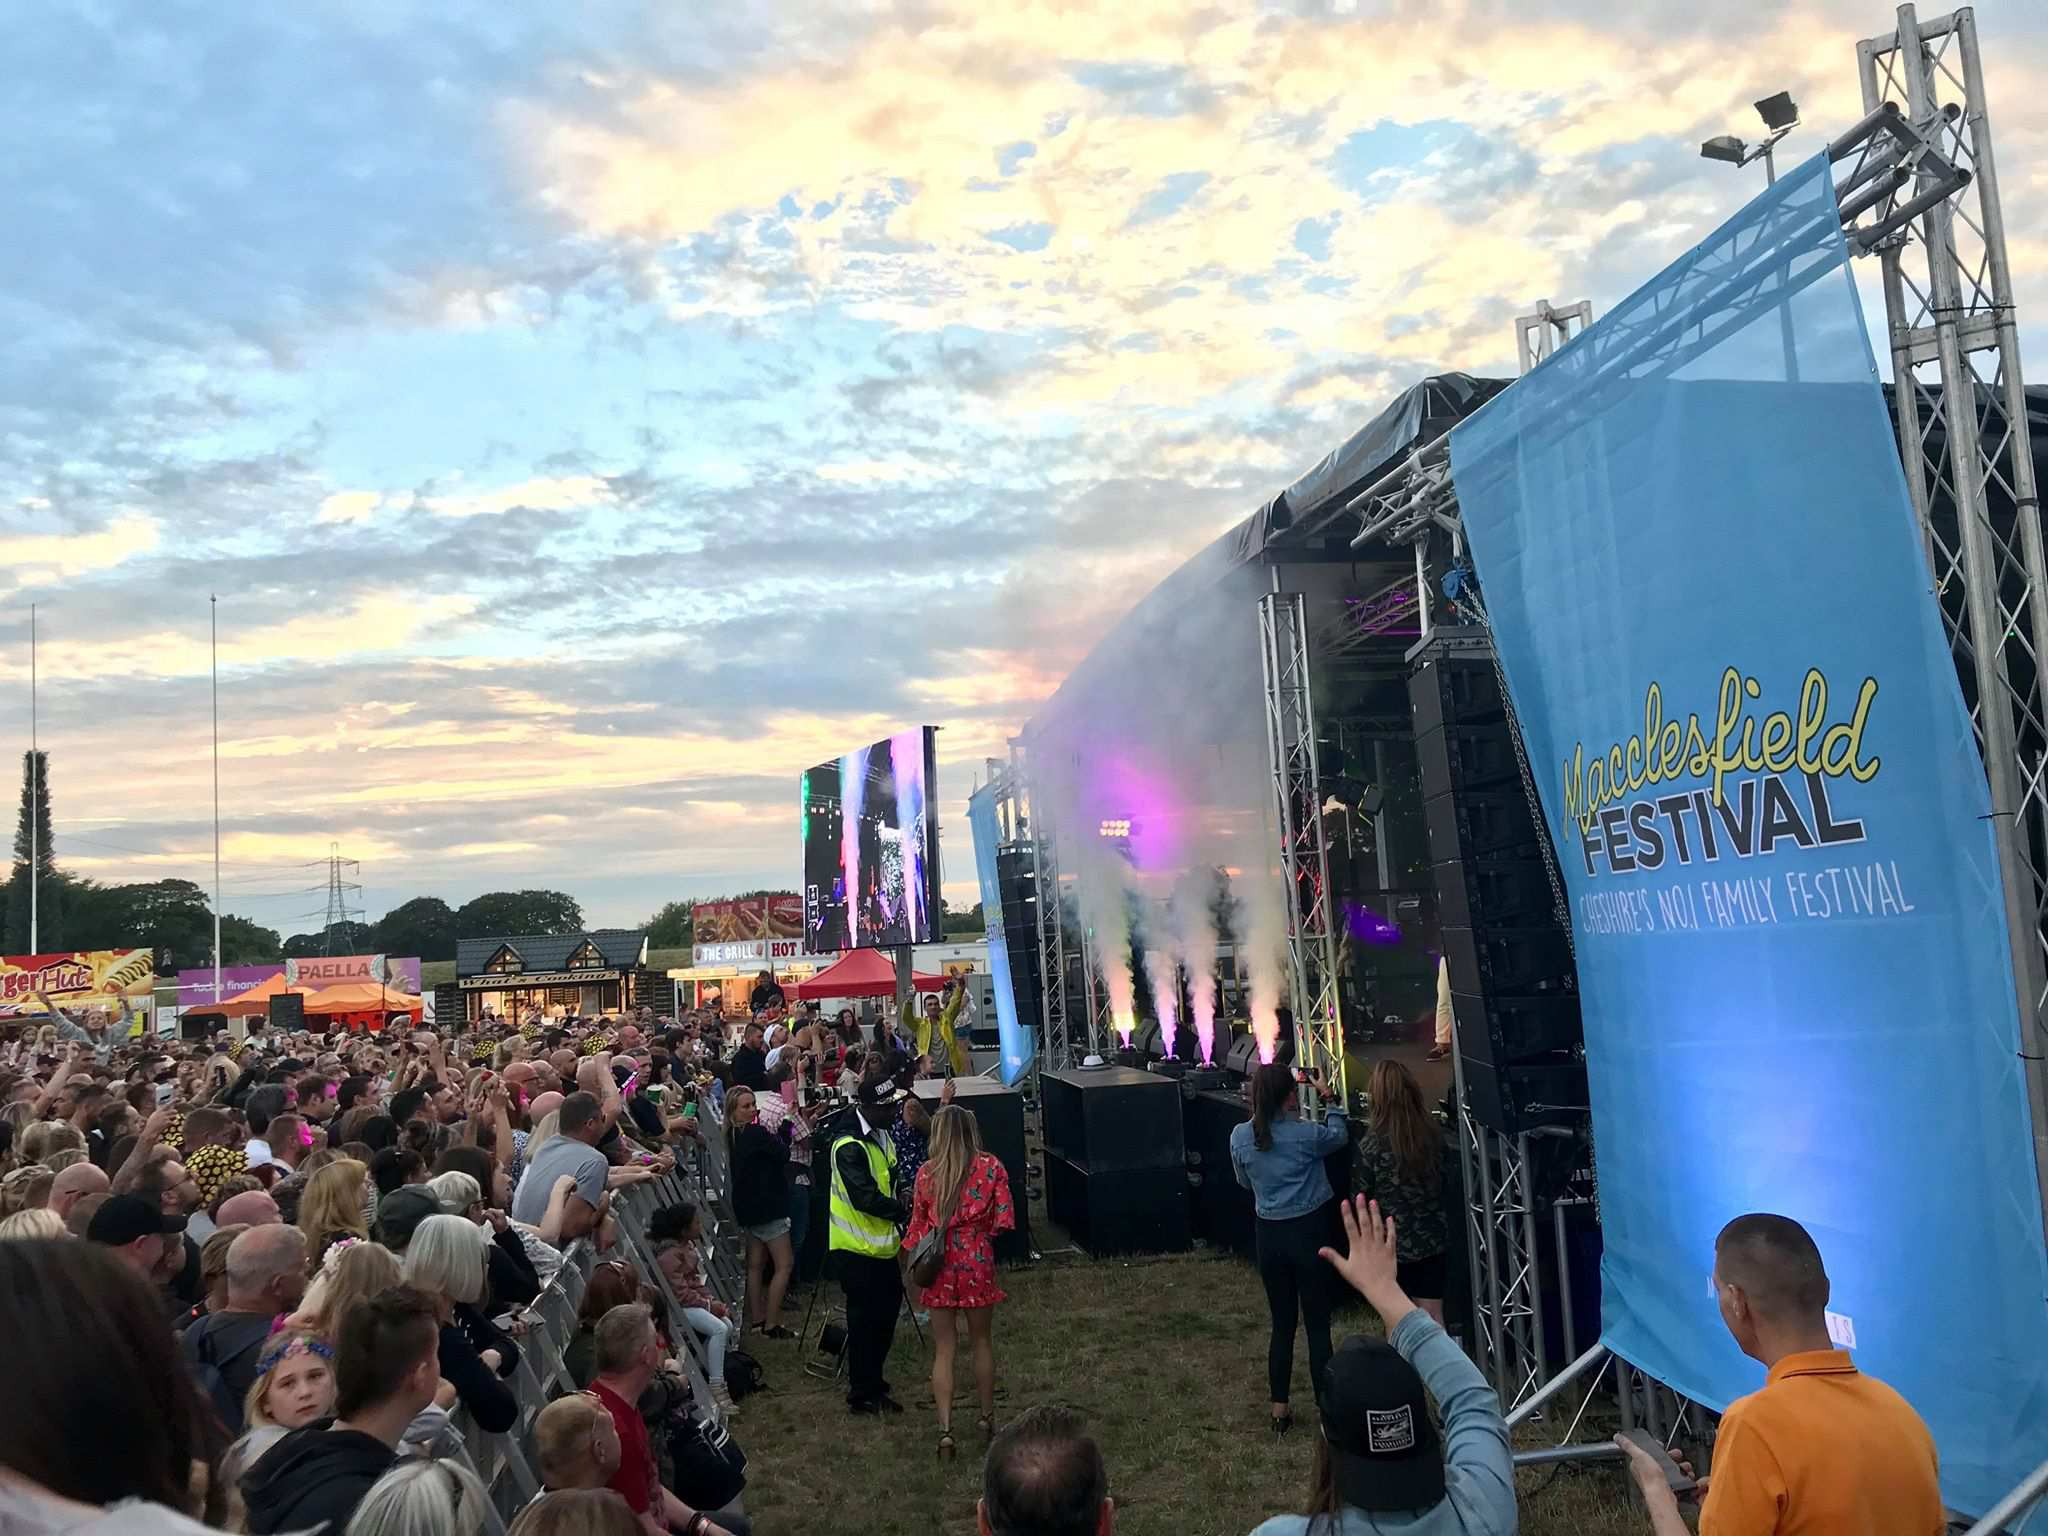 VIDEO HIGHLIGHTS FROM THE MACCLESFIELD FESTIVAL 2018